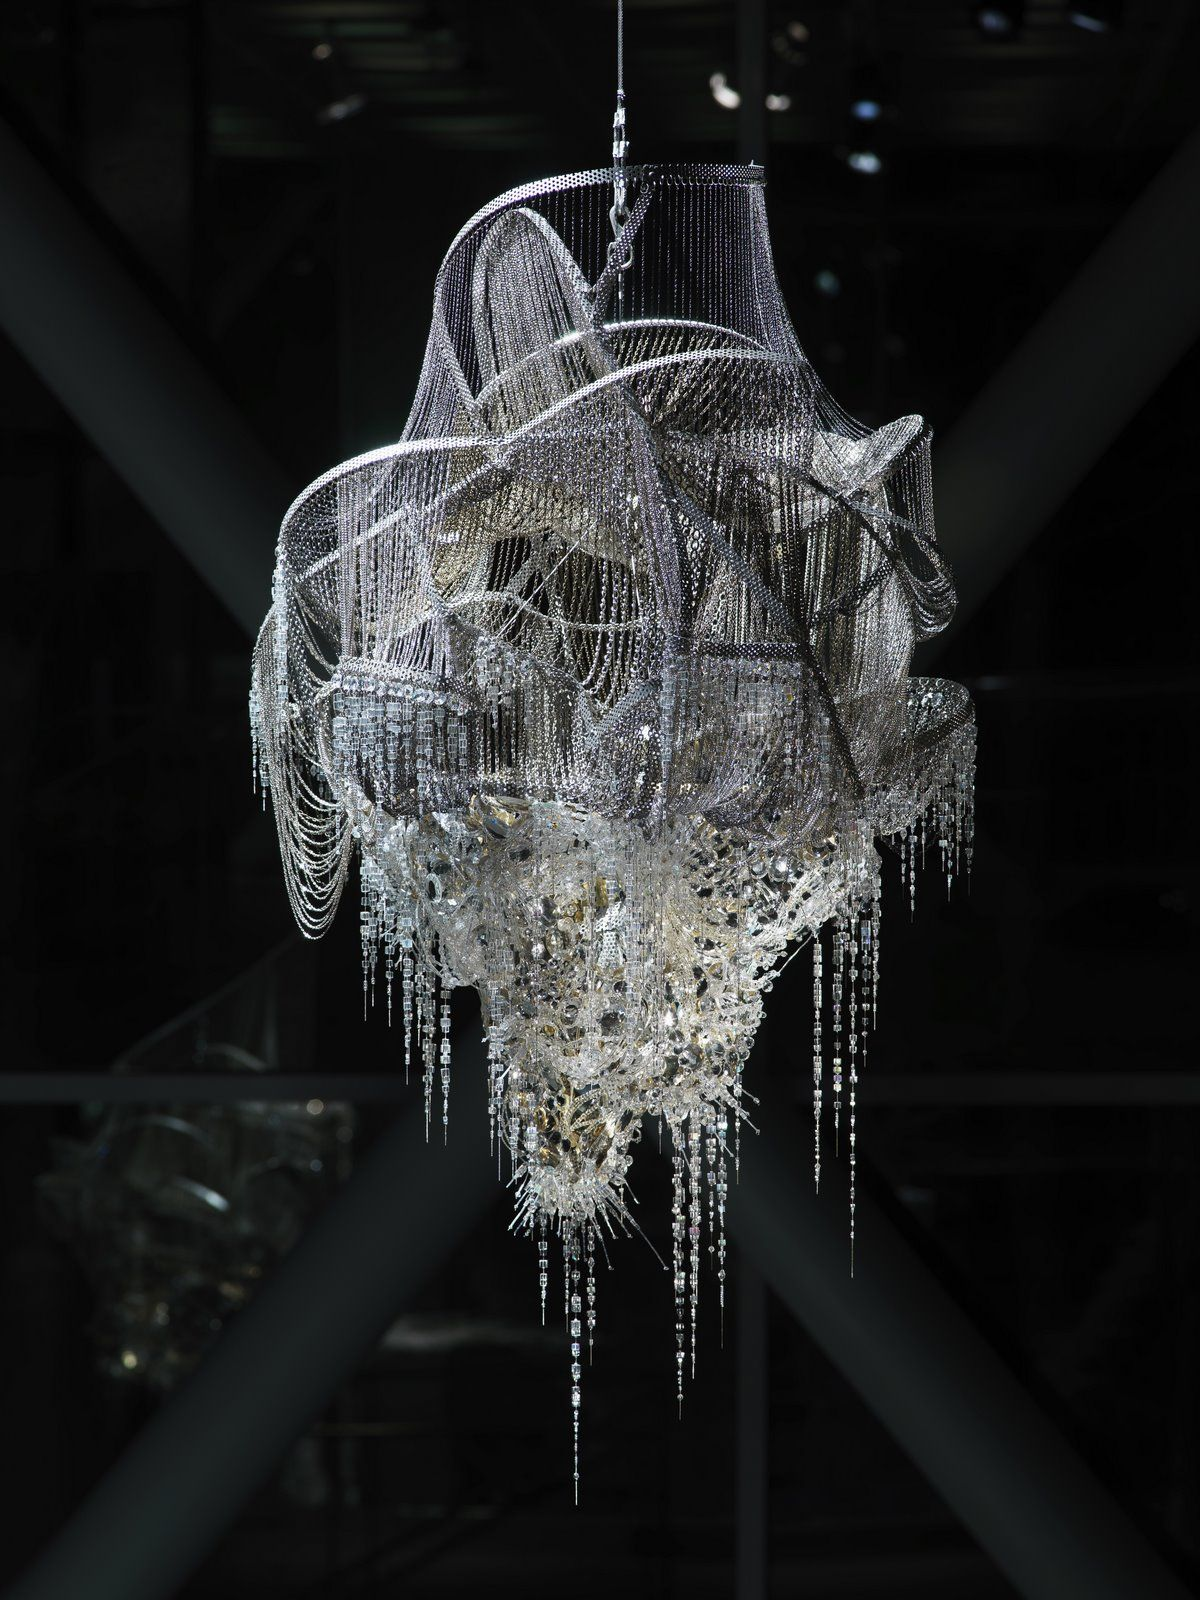 Chandelier by lee bul andelier pinterest chandelier by lee bul arubaitofo Image collections